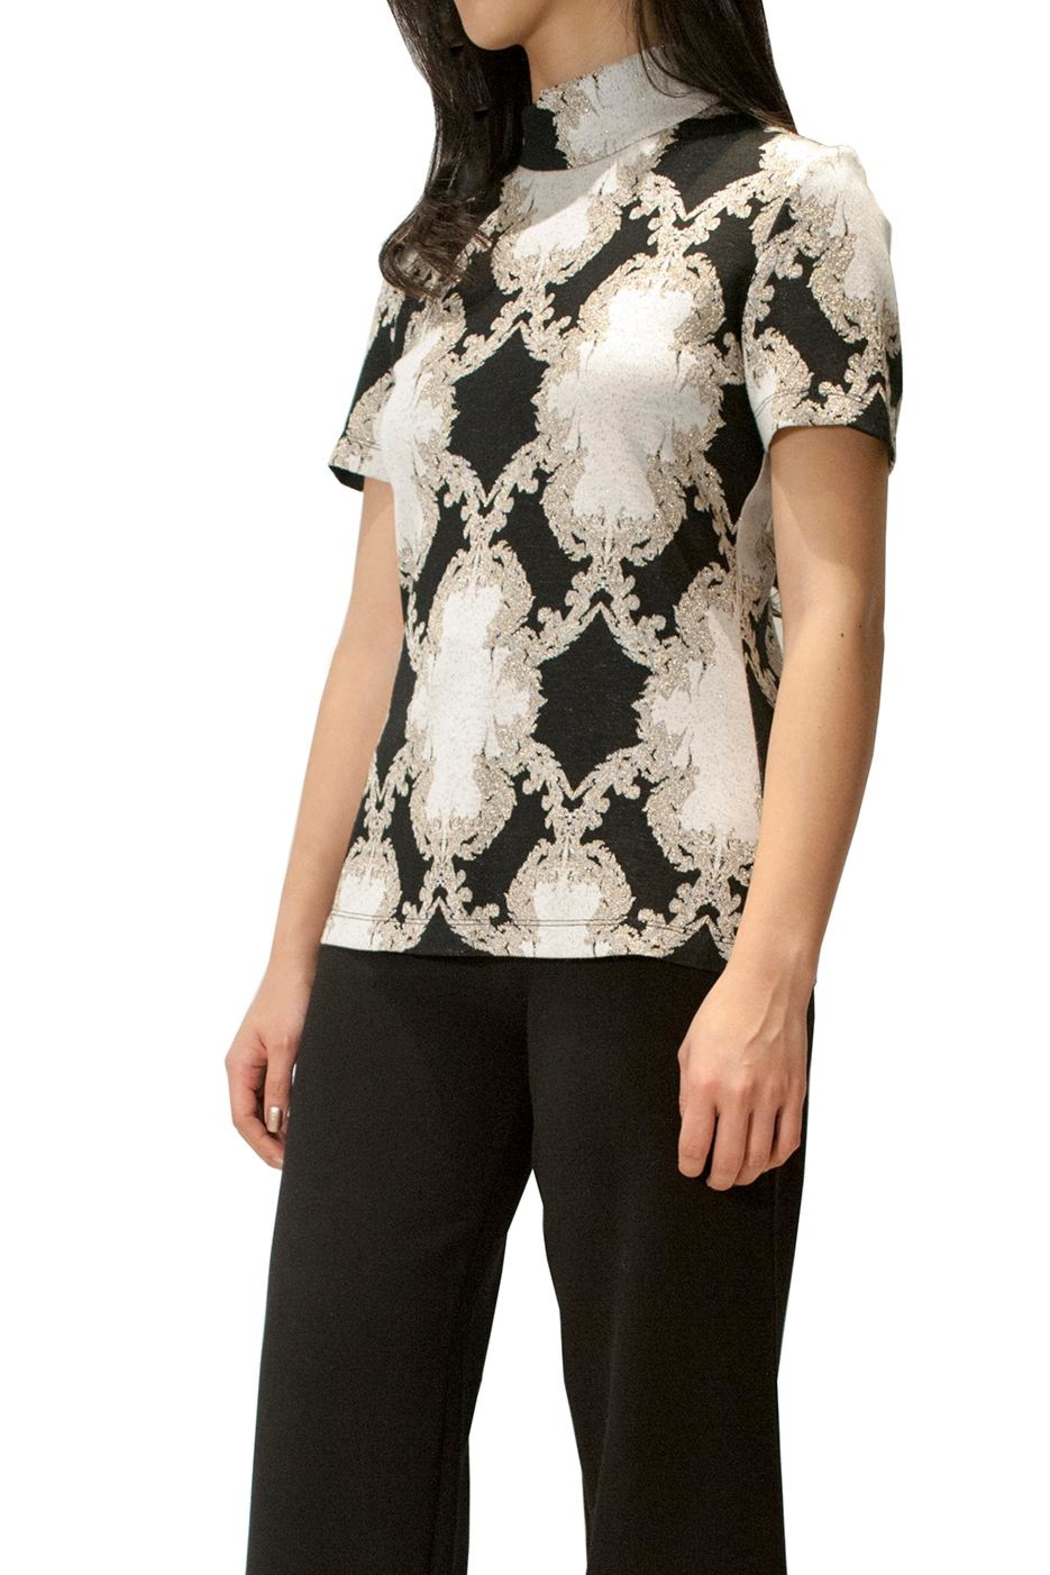 Camelot Embroidered Metallic Top - Main Image